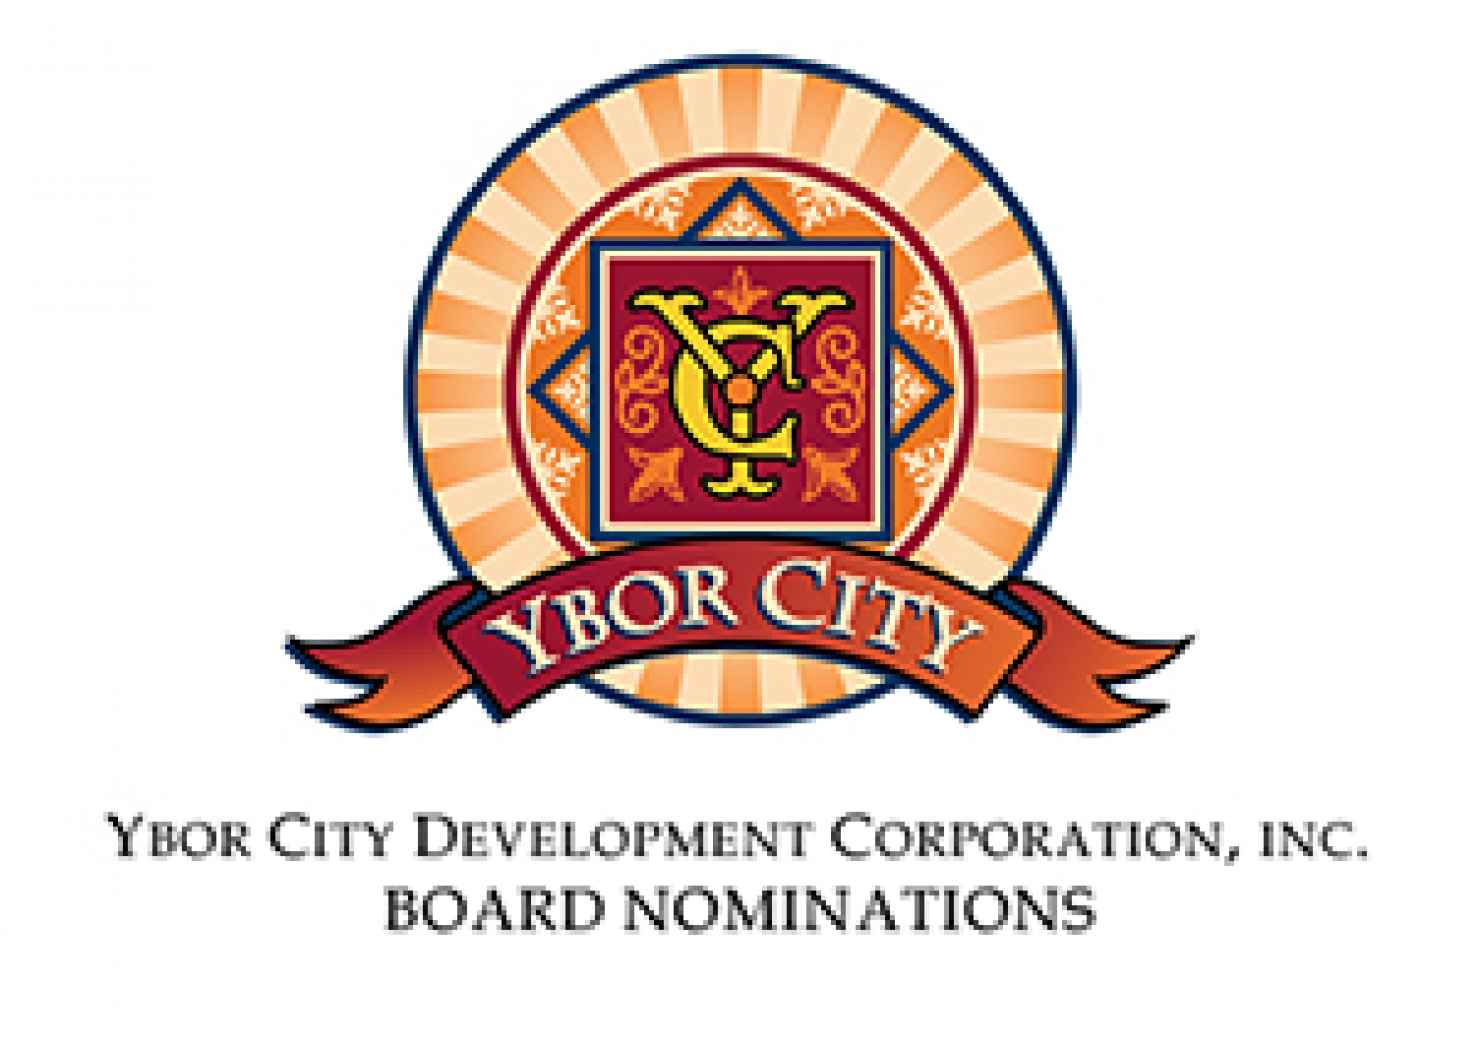 Ybor City Development Corporation Board Nominations